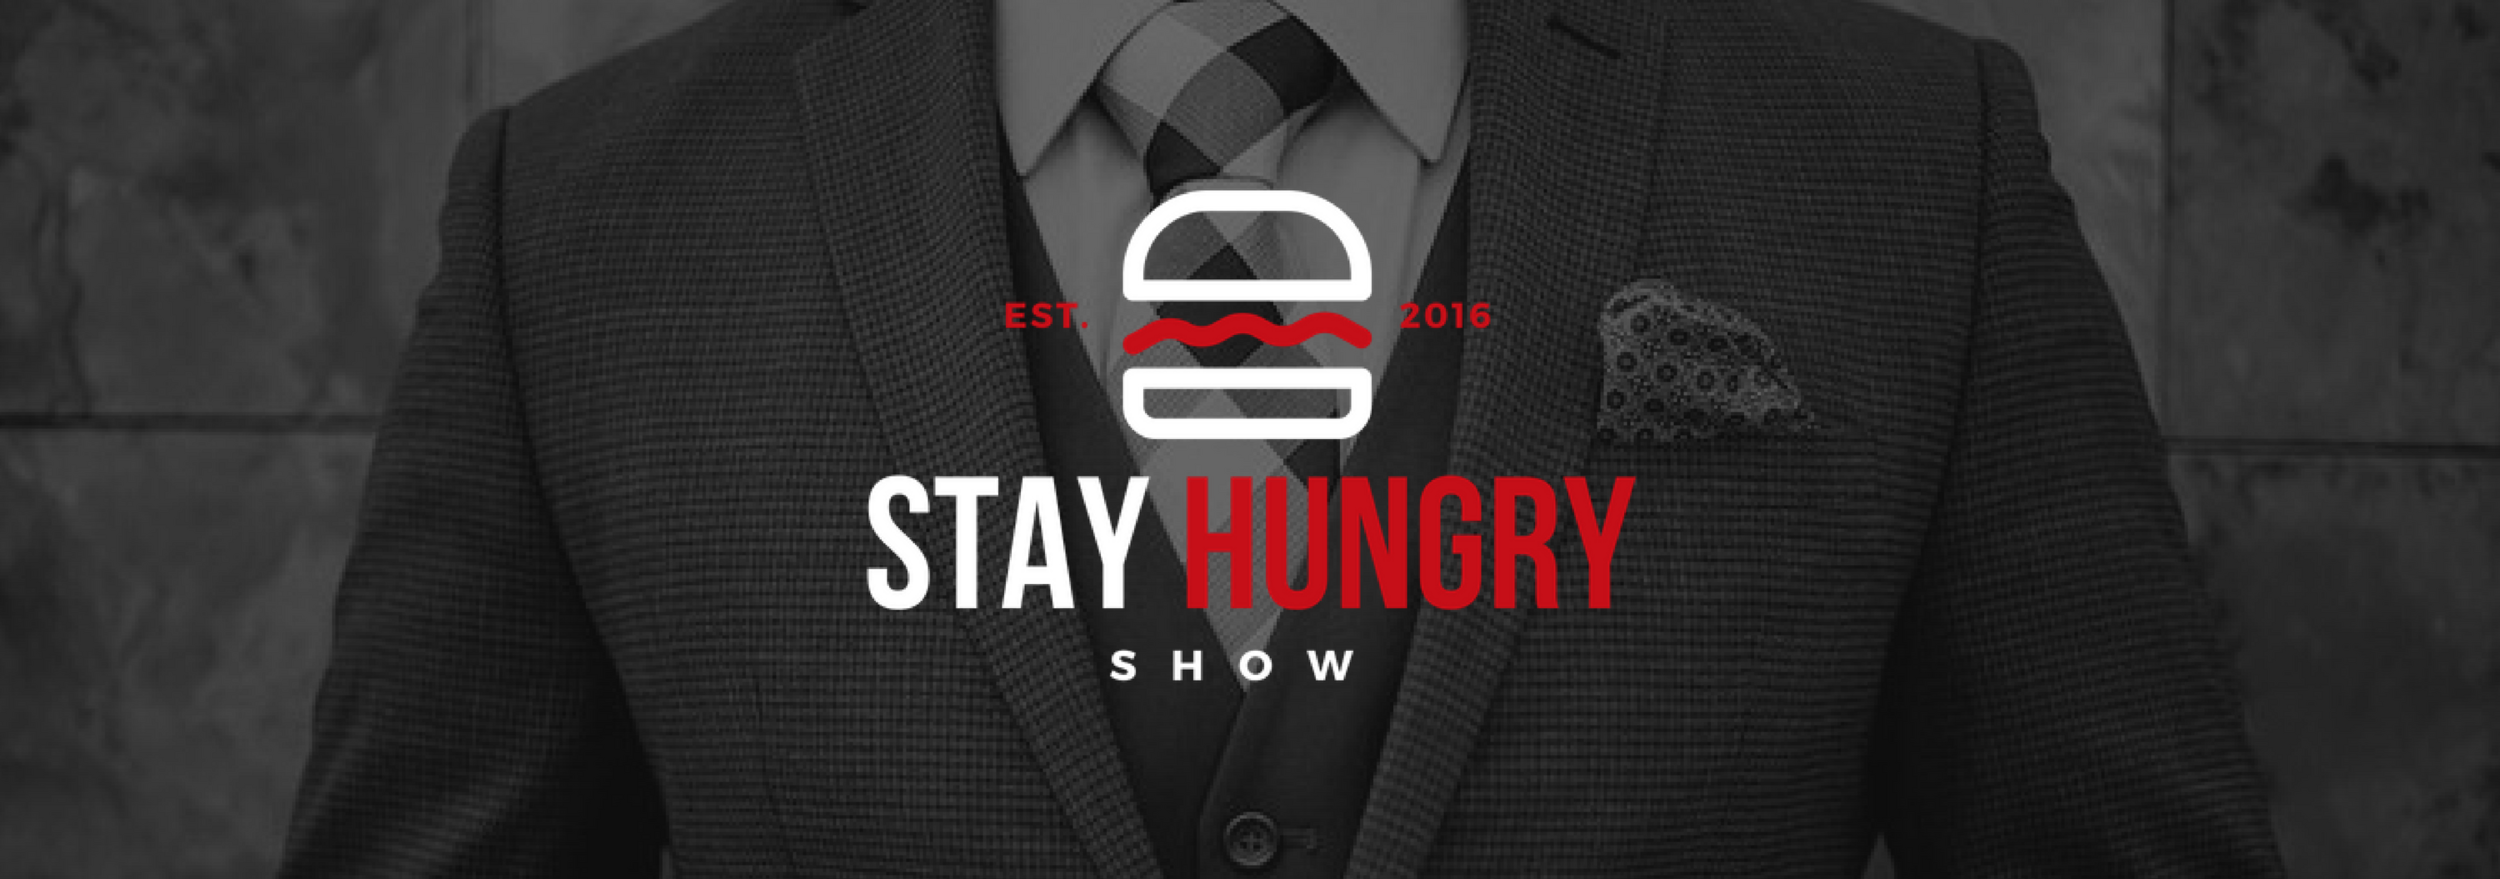 StayHungry Website Banner